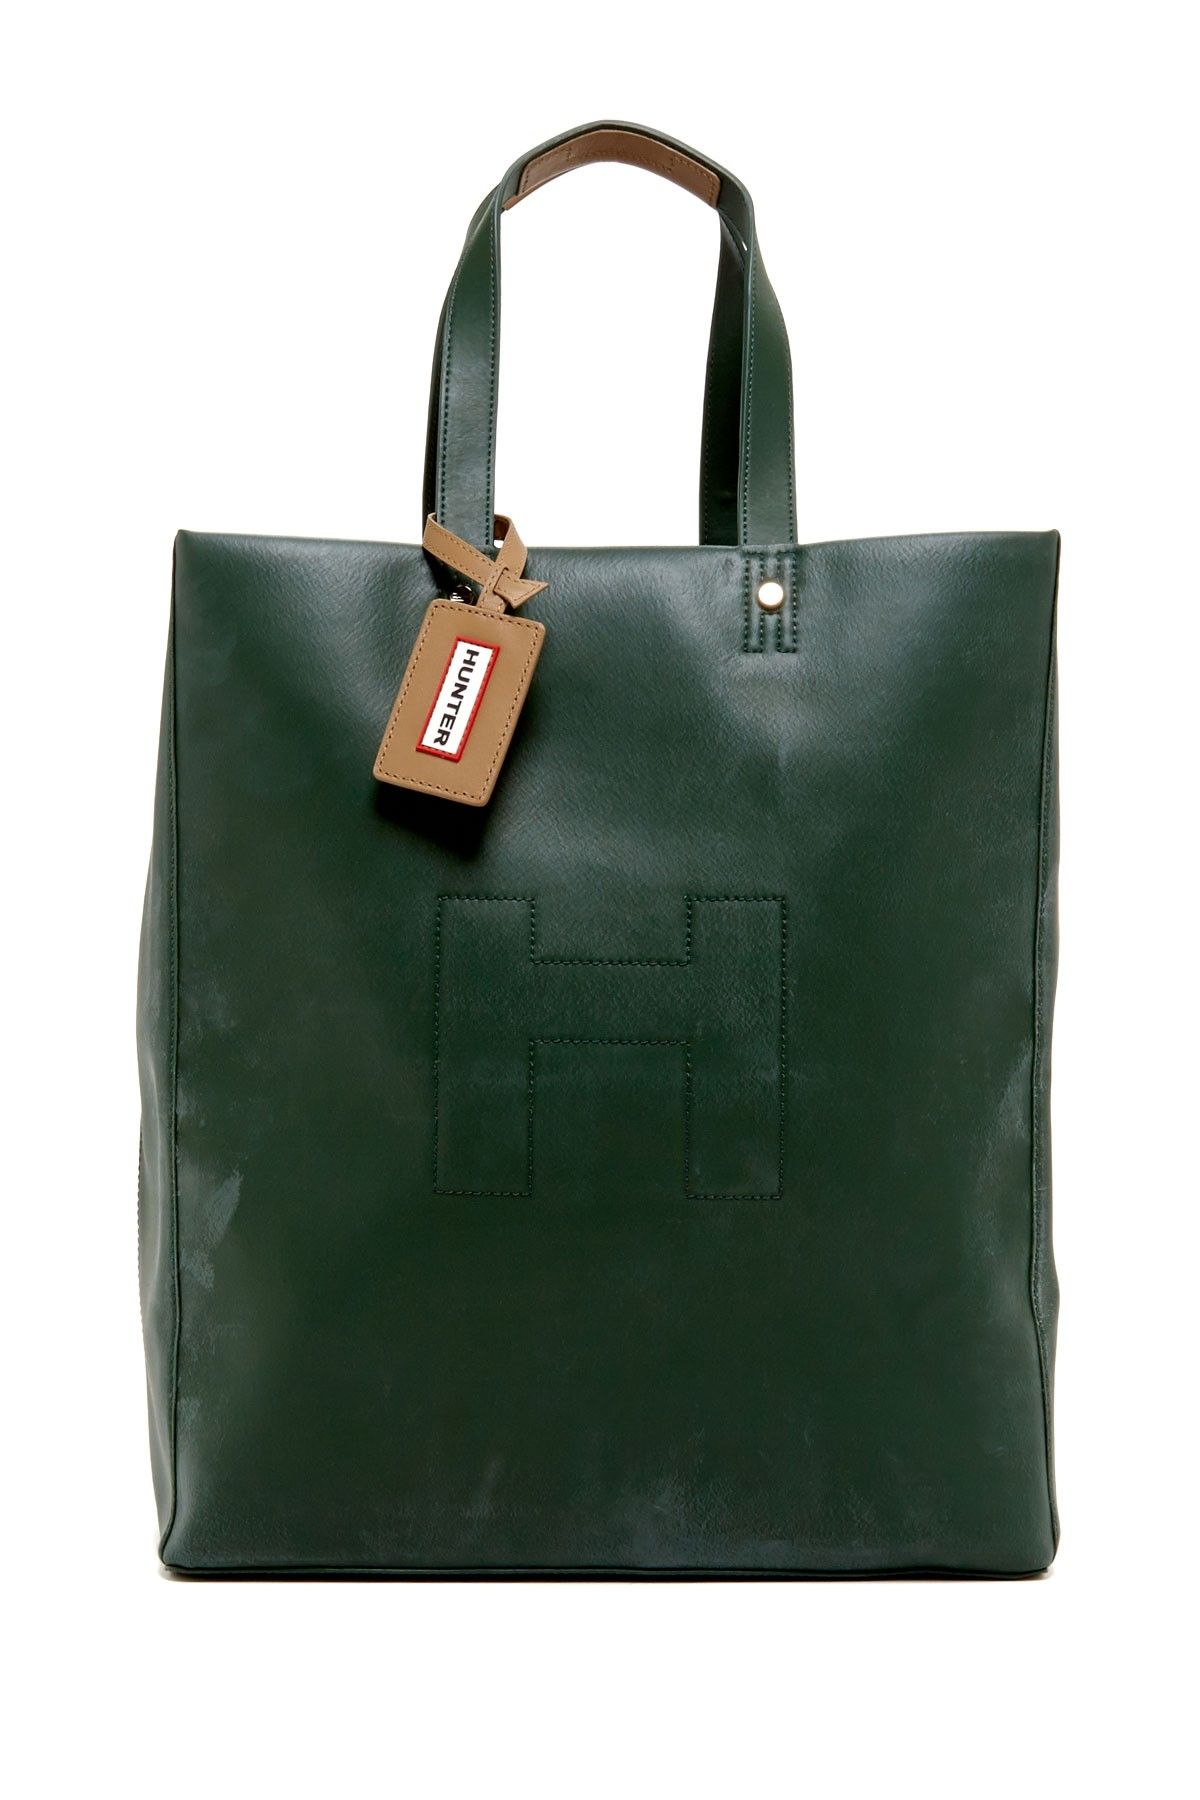 b66a4d73a8 Tall Original Tote